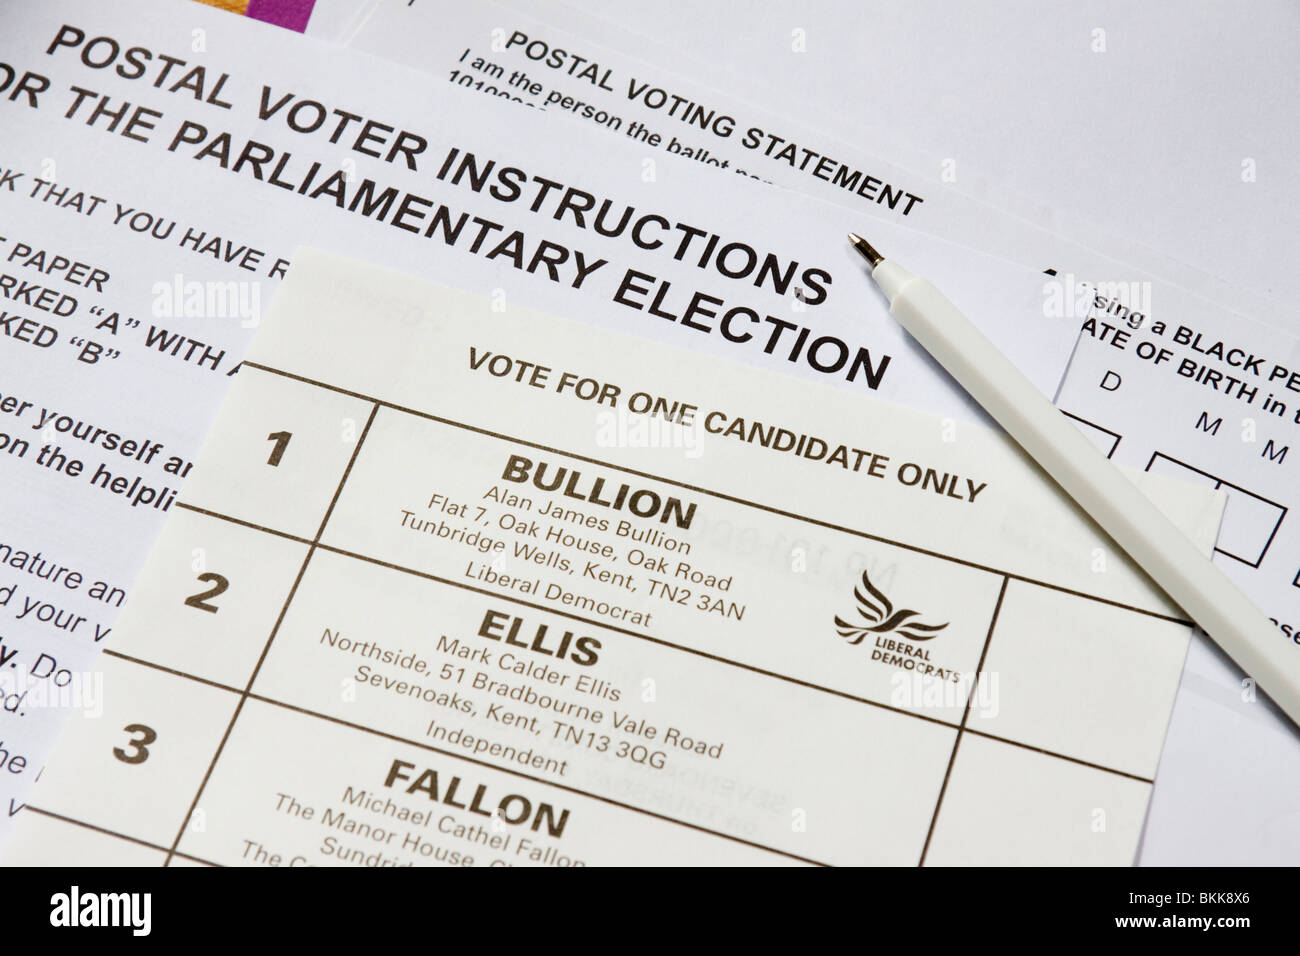 Postal voting ballot papers for the General Election, constituency of Sevenoaks, Kent, England - Stock Image